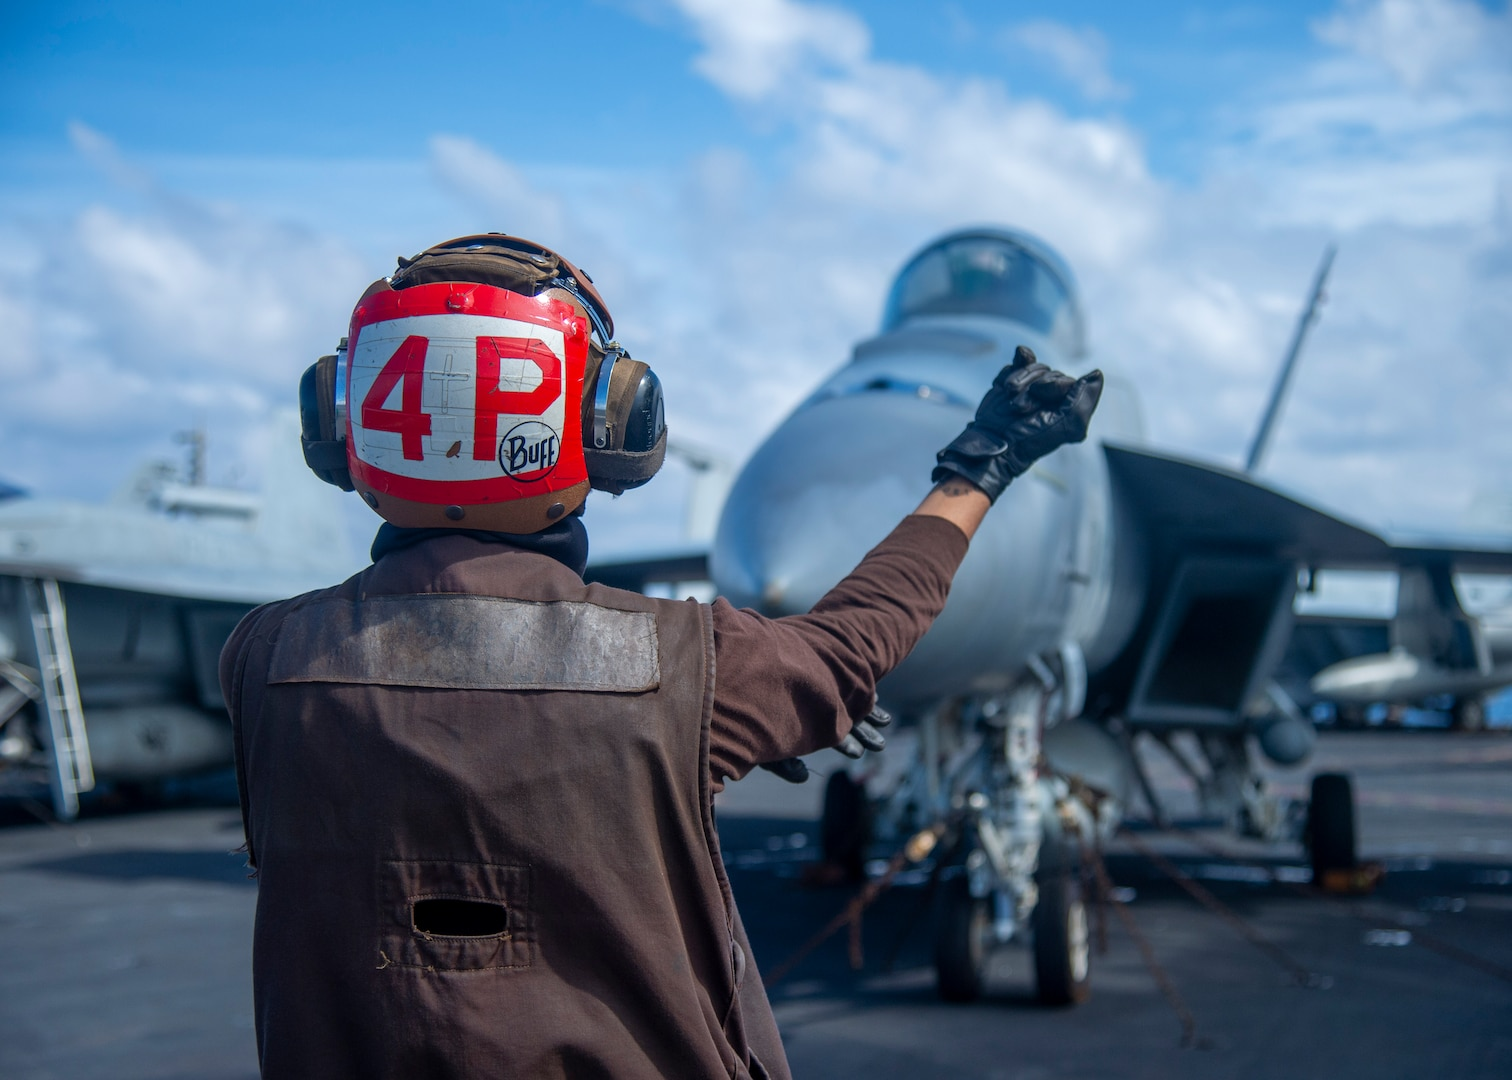 """PACIFIC OCEAN (Jan. 23, 2021) – U.S. Navy Airman John Ramoslayton, from Carolina, Puerto Rico, assigned to the """"Golden Warriors"""" of Strike Fighter Squadron (VFA) 87, directs Rear Adm. Doug Verissimo, commander, Carrier Strike Group Nine, to conduct pre-flight checks on an F/A-18E Super Hornet, assigned to VFA 87, aboard the aircraft carrier USS Theodore Roosevelt (CVN 71) Jan. 23, 2021. The Theodore Roosevelt Carrier Strike Group is on a scheduled deployment to the U.S. 7th Fleet area of operations. As the U.S. Navy's largest forward deployed fleet, with its approximate 50-70 ships and submarines, 140 aircraft, and 20,000 Sailors in the area of operations at any given time, 7th Fleet conducts forward-deployed naval operations in support of U.S. national interests throughout a free and open Indo-Pacific area of operations to foster maritime security, promote stability, and prevent conflict alongside 35 other maritime nations and partners."""